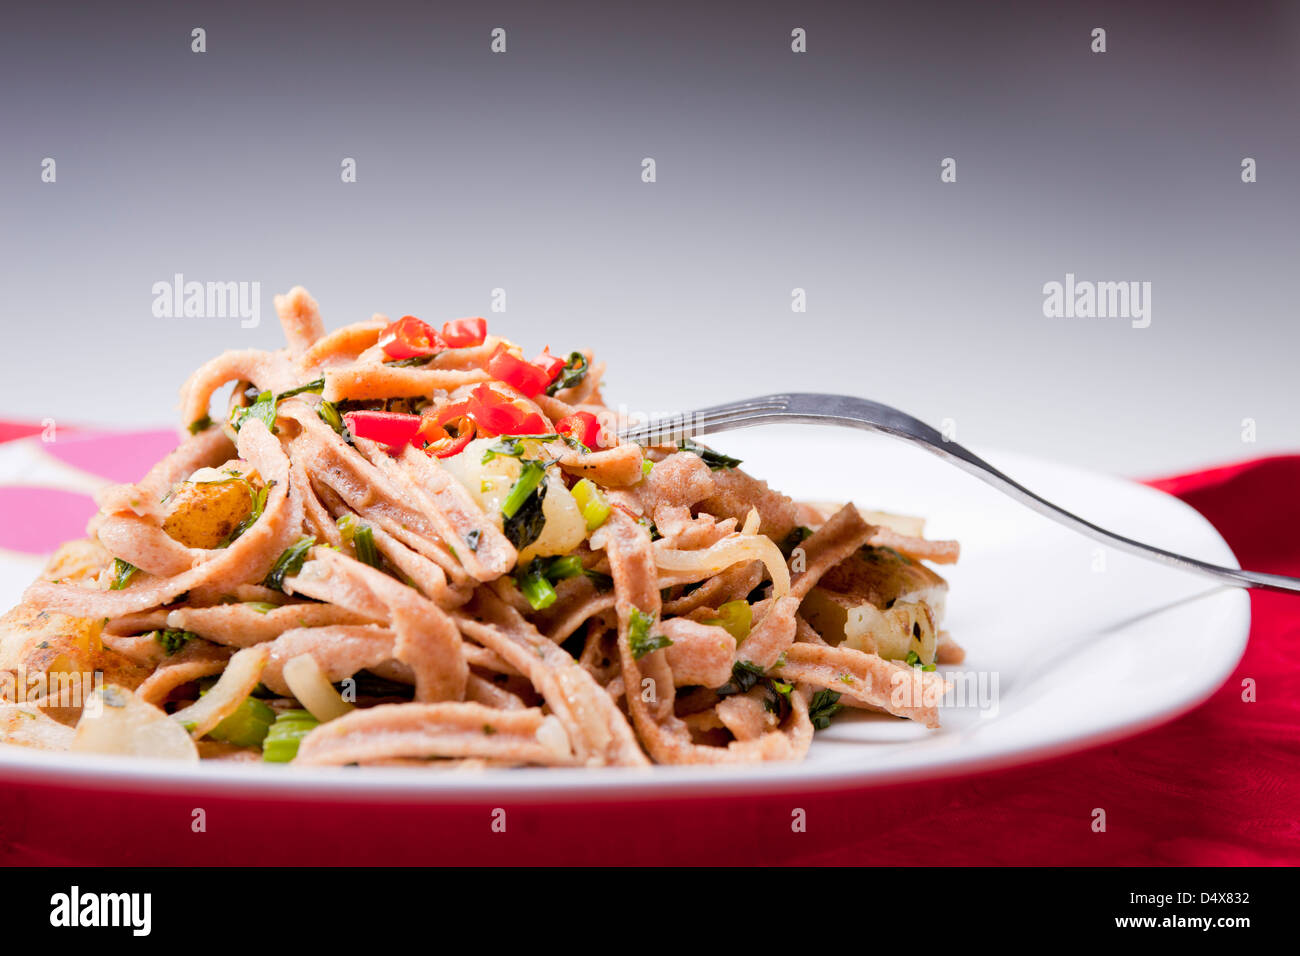 Plate of pasta. - Stock Image